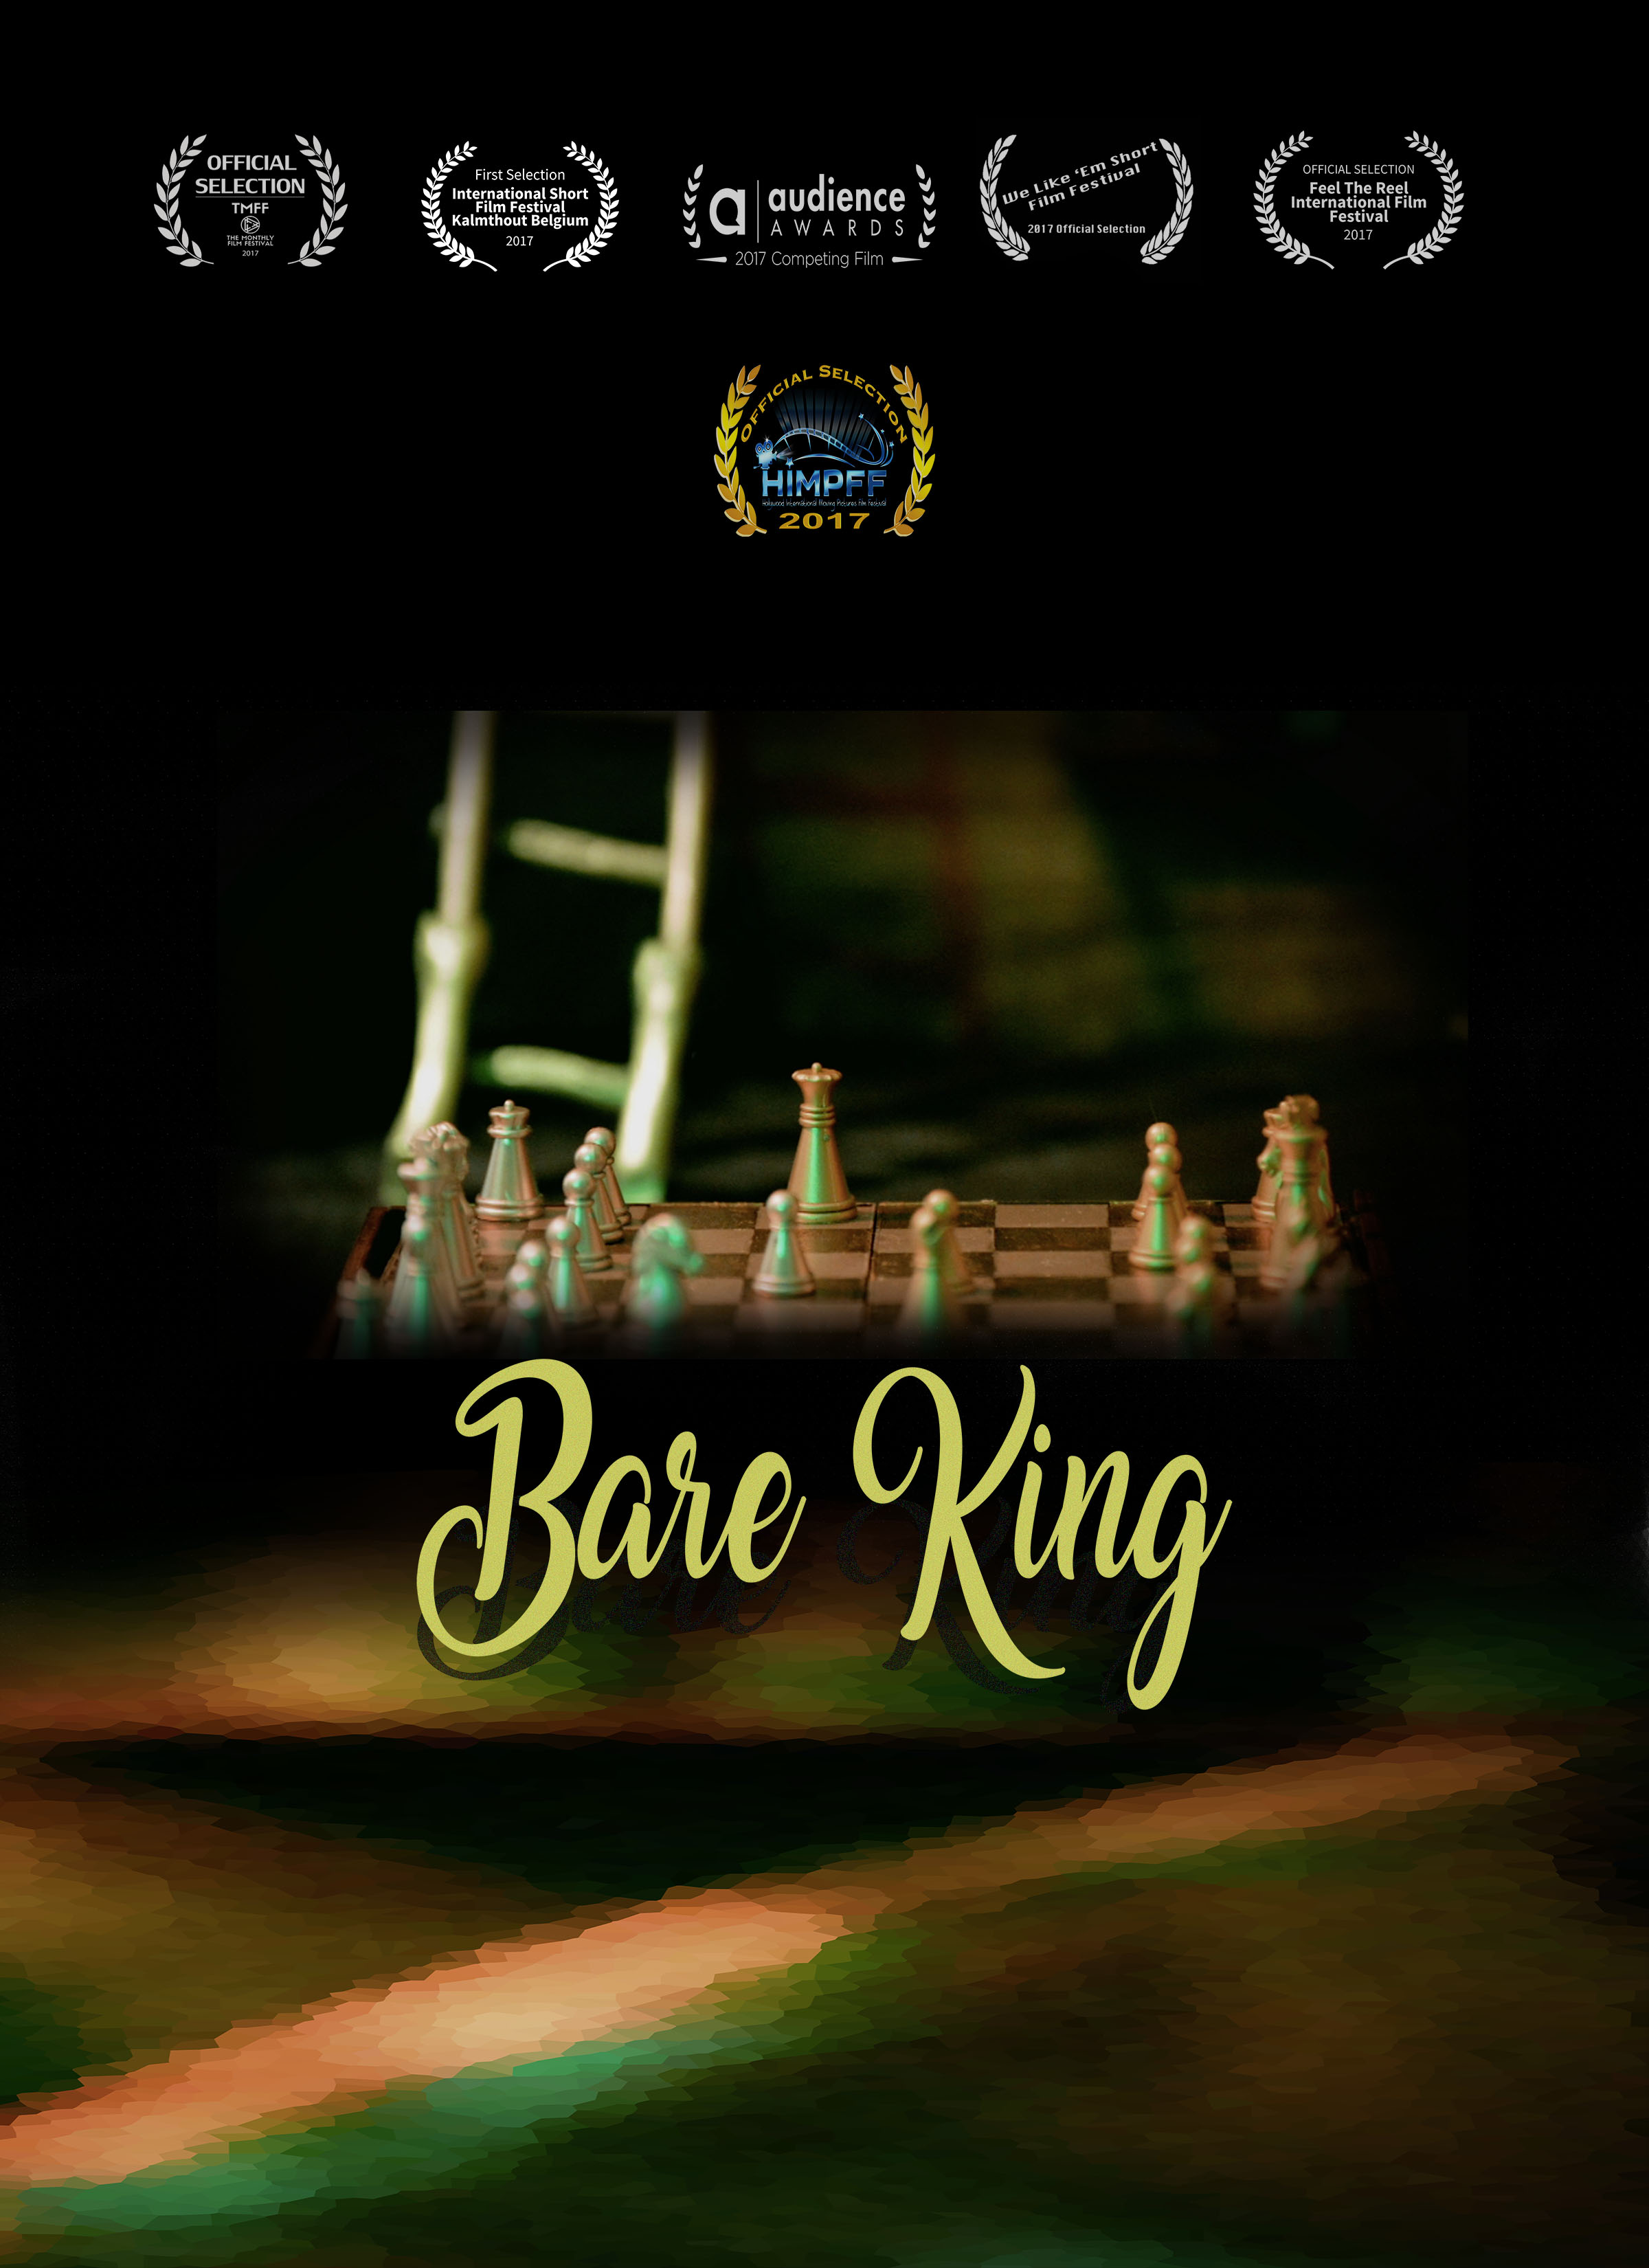 Bare King  - (2016)A mad scientist works on his greatest creation yet: a worthy chess opponent.